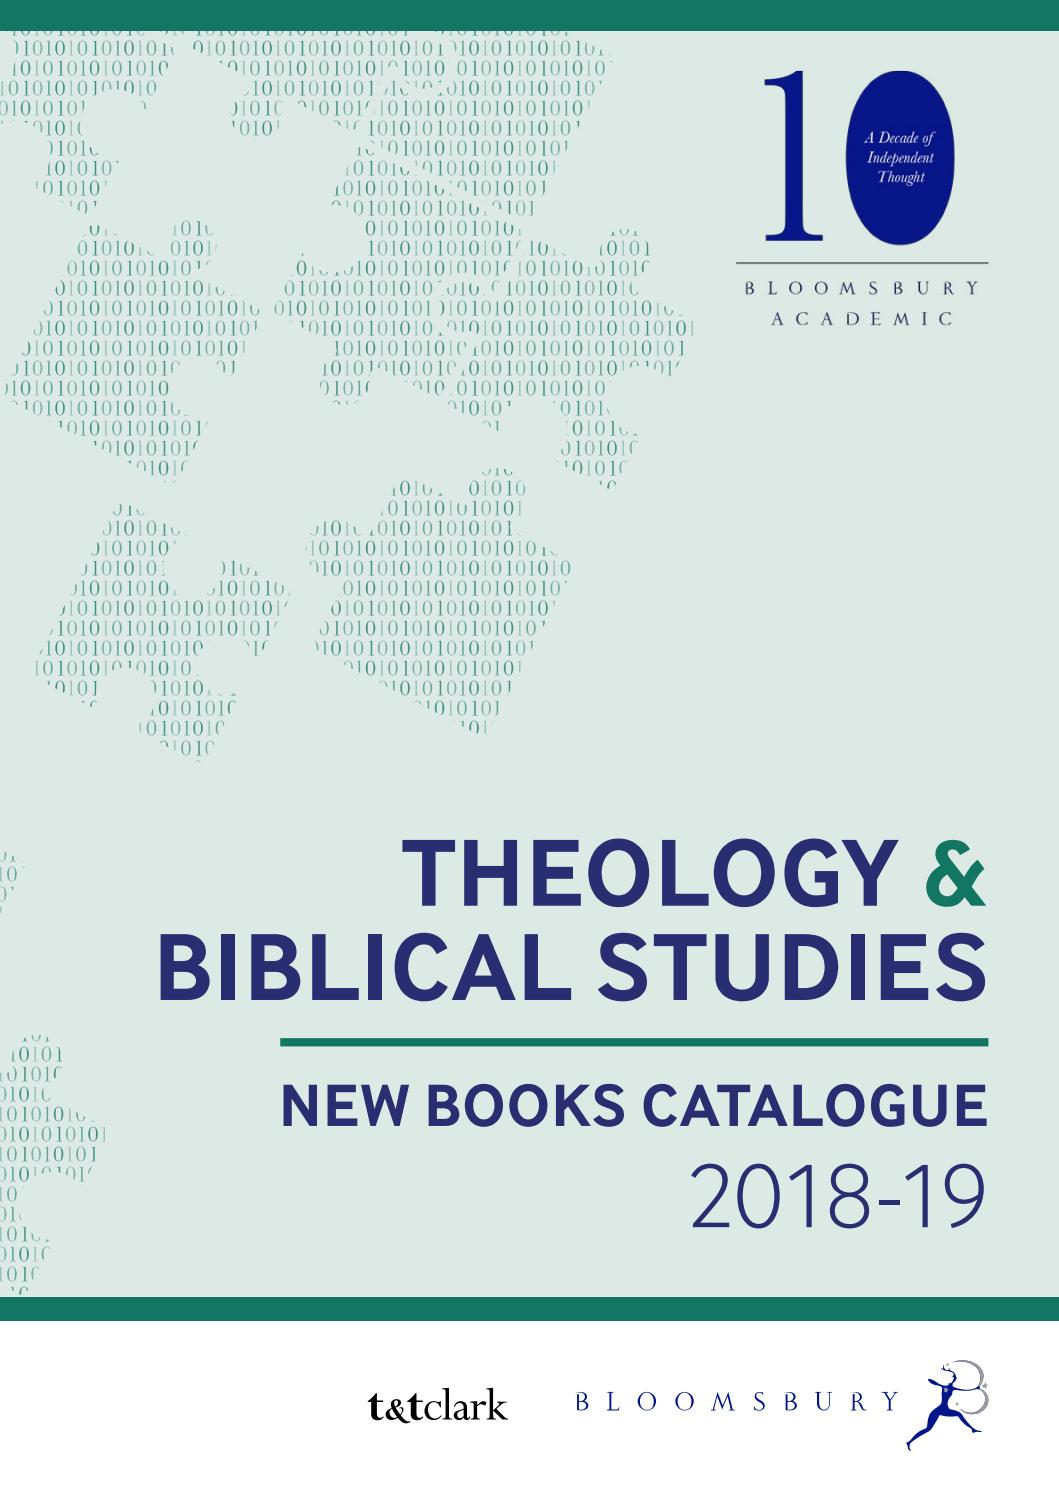 Theology & Biblical Studies Catalogue 2018-19 by Bloomsbury